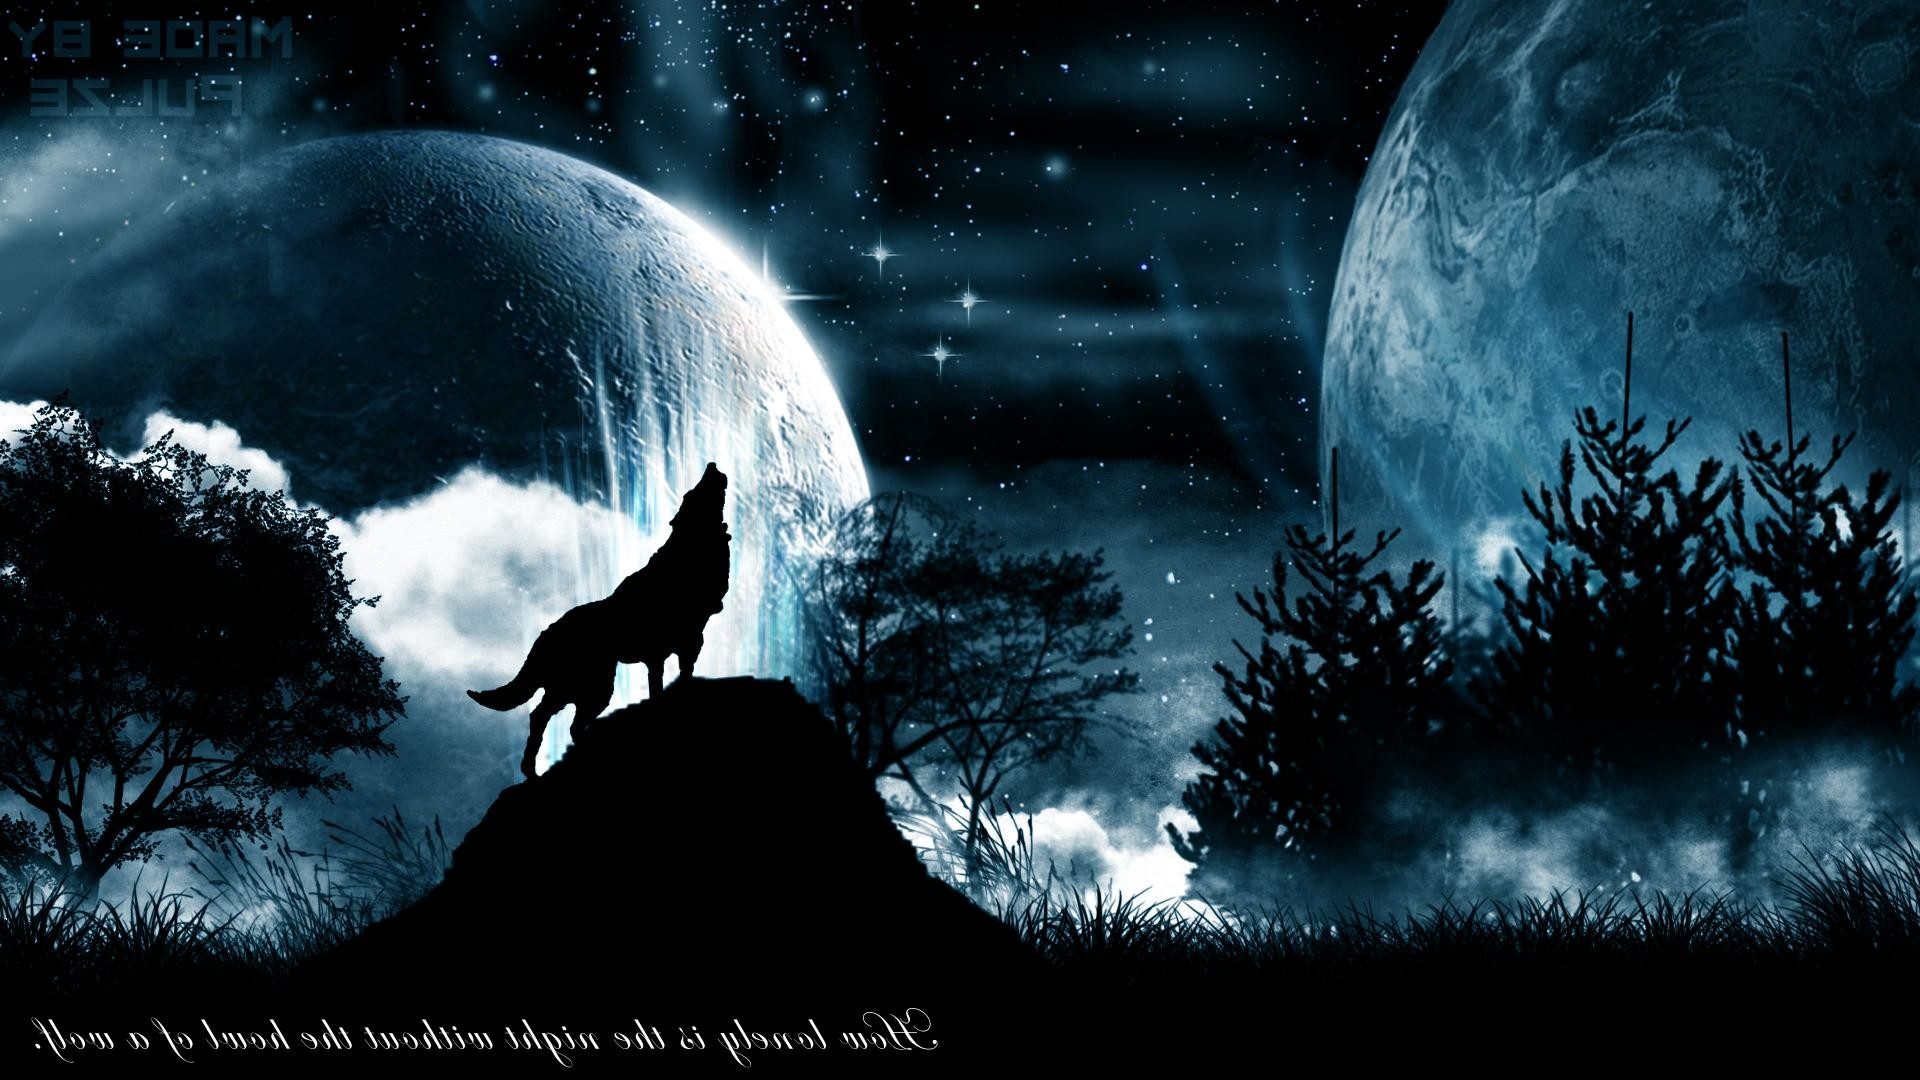 Free Download Galaxy Wolf Wallpaper 69 Images 1920x1080 For Your Desktop Mobile Tablet Explore 29 Black Wolf Galaxy Wallpapers Black Wolf Galaxy Wallpapers Galaxy Wolf Wallpaper Black Wolf Wallpaper